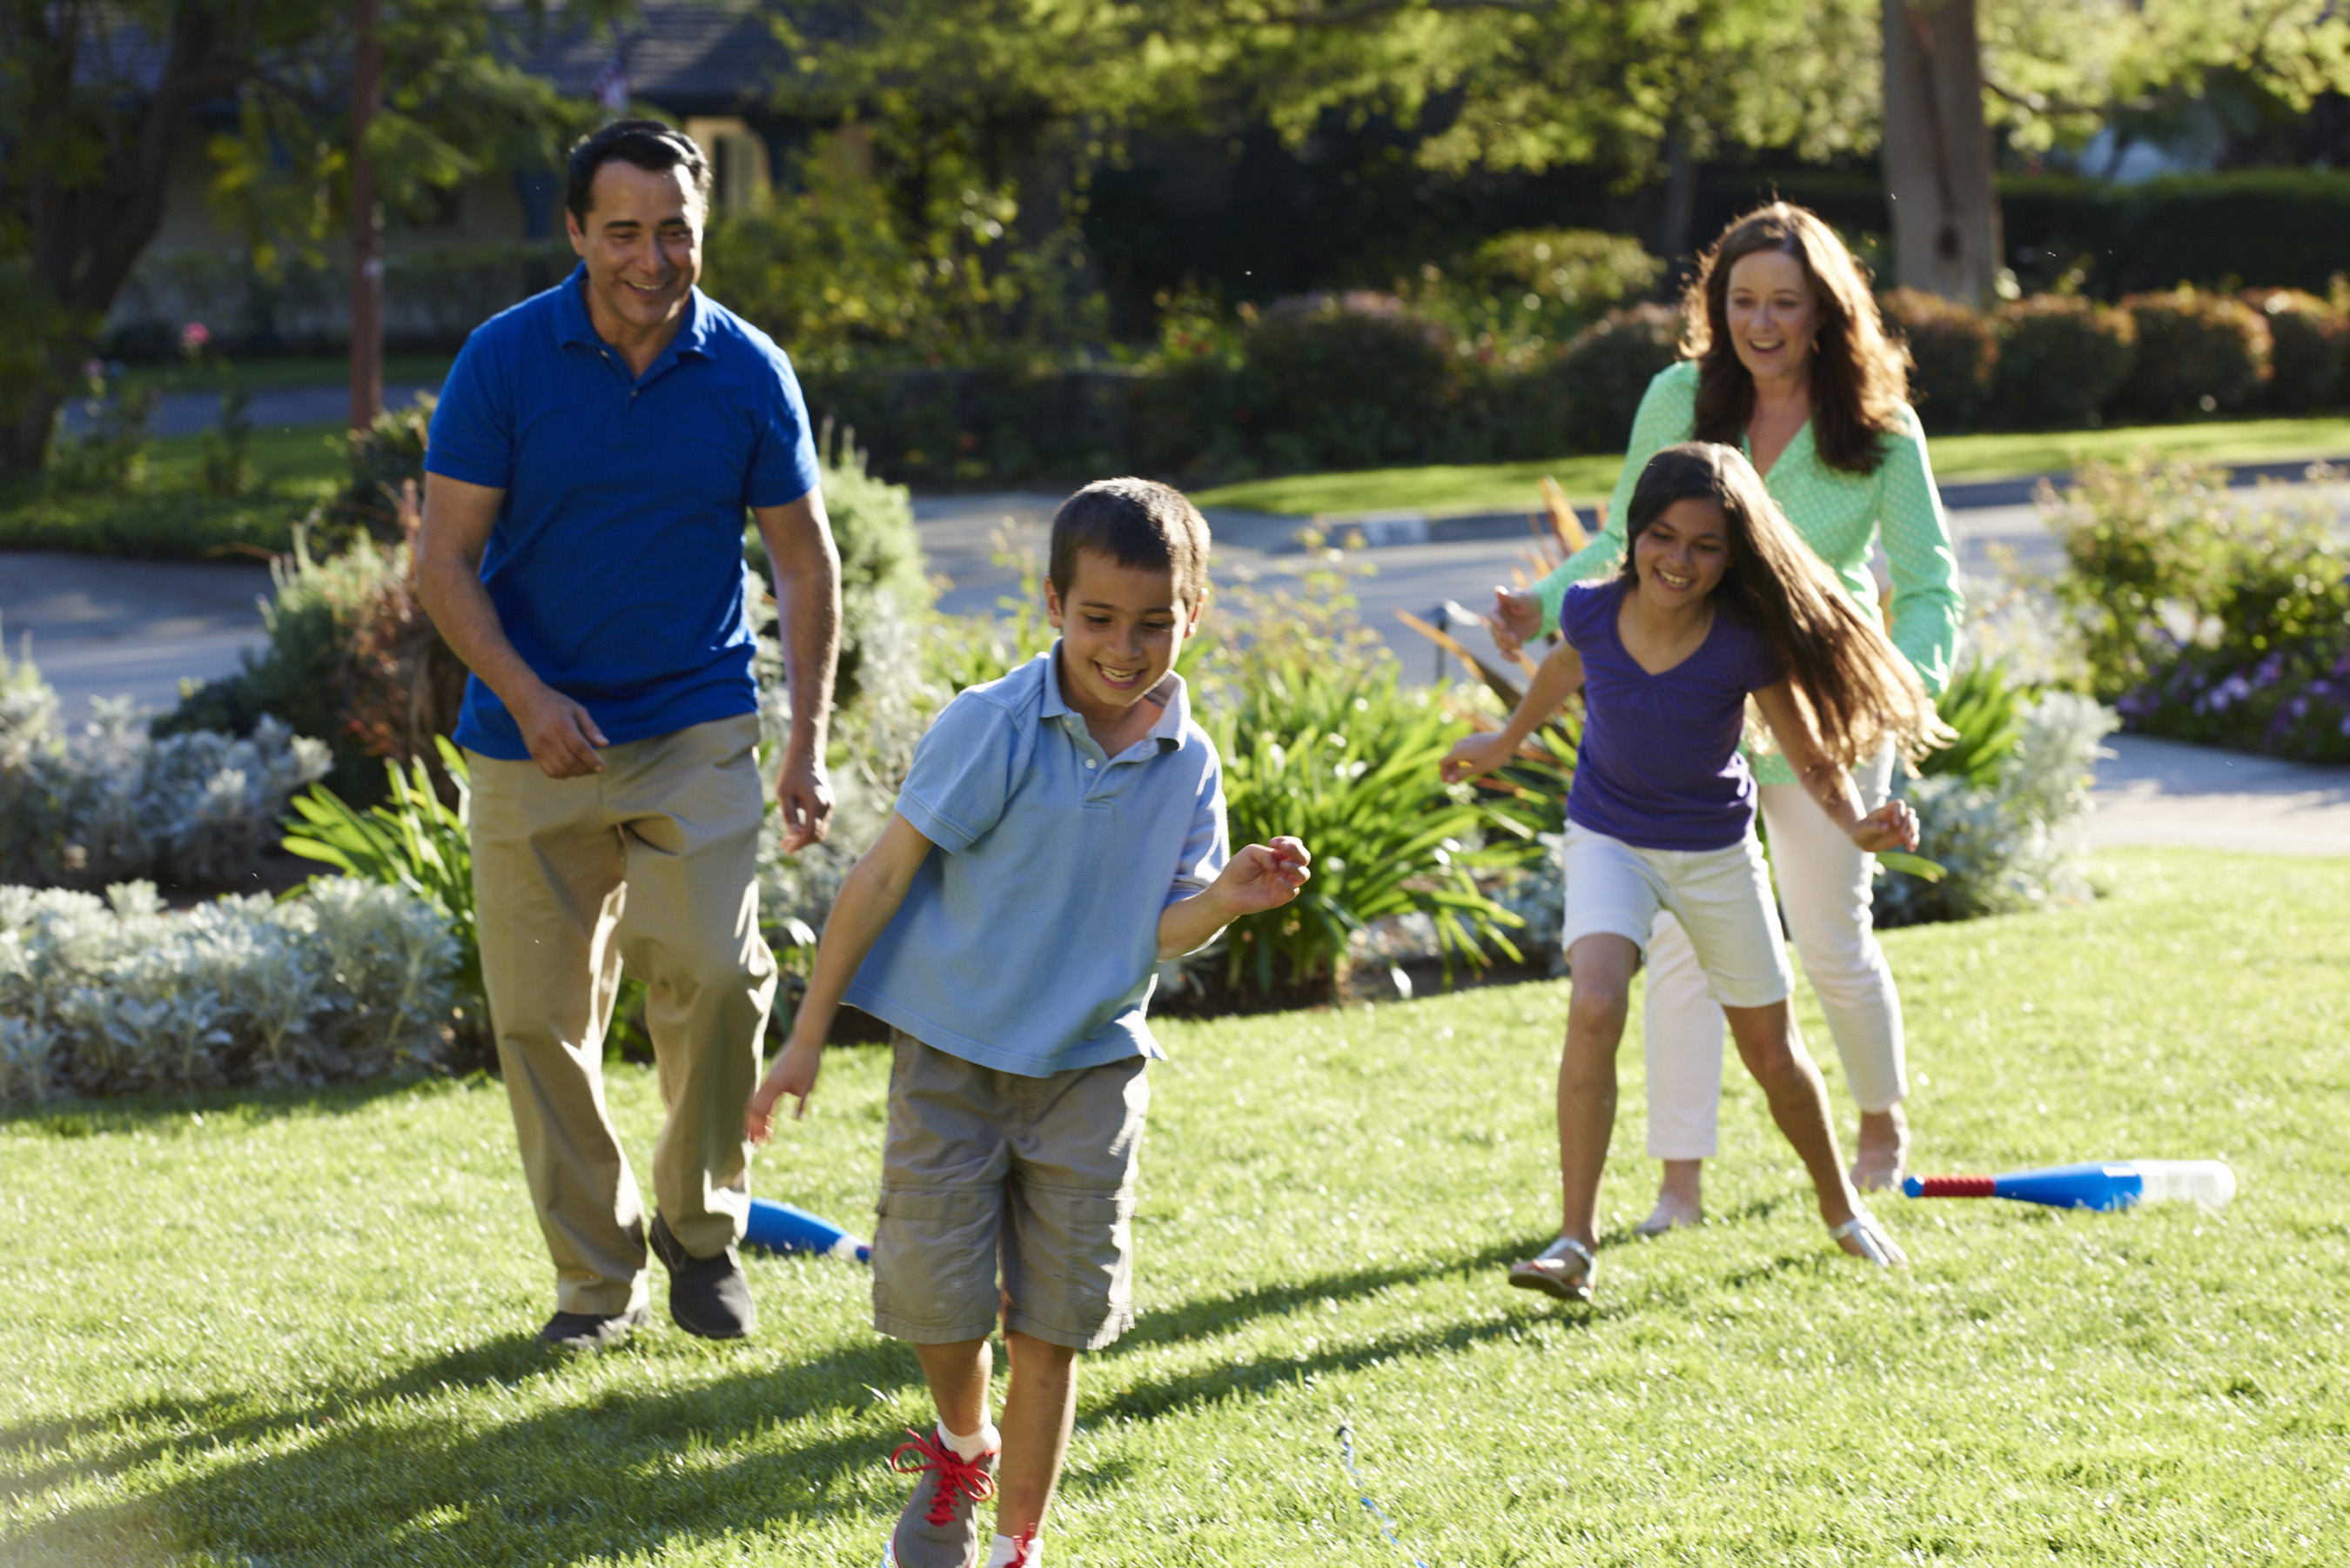 TruGreen Helps America LiveLifeOutside with Tips and Ideas for